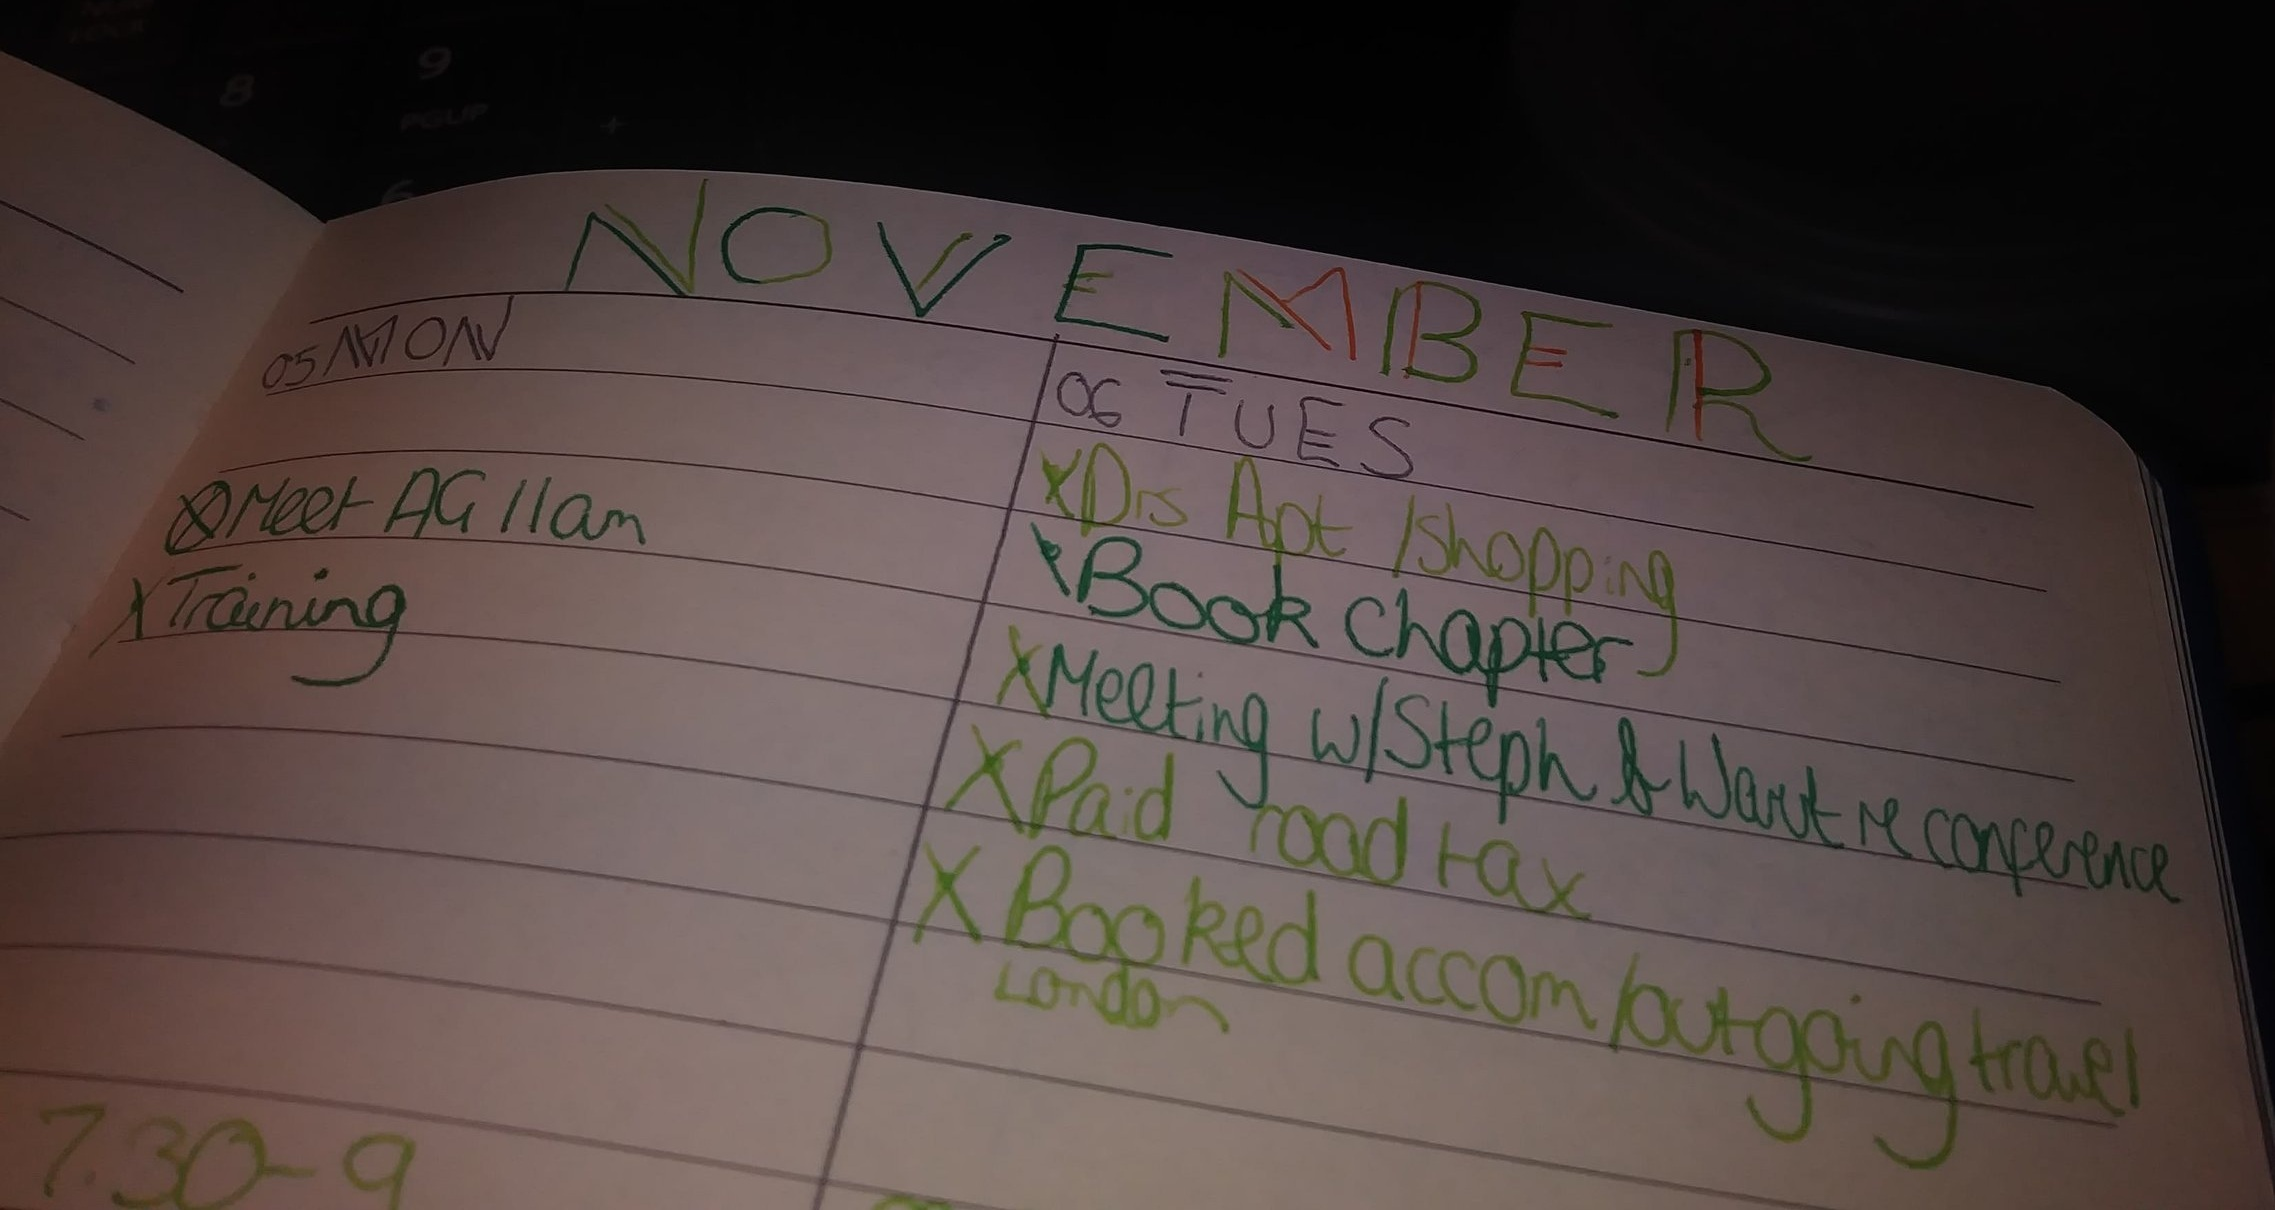 A page showing from a bullet journal showing the tasks from two days in November